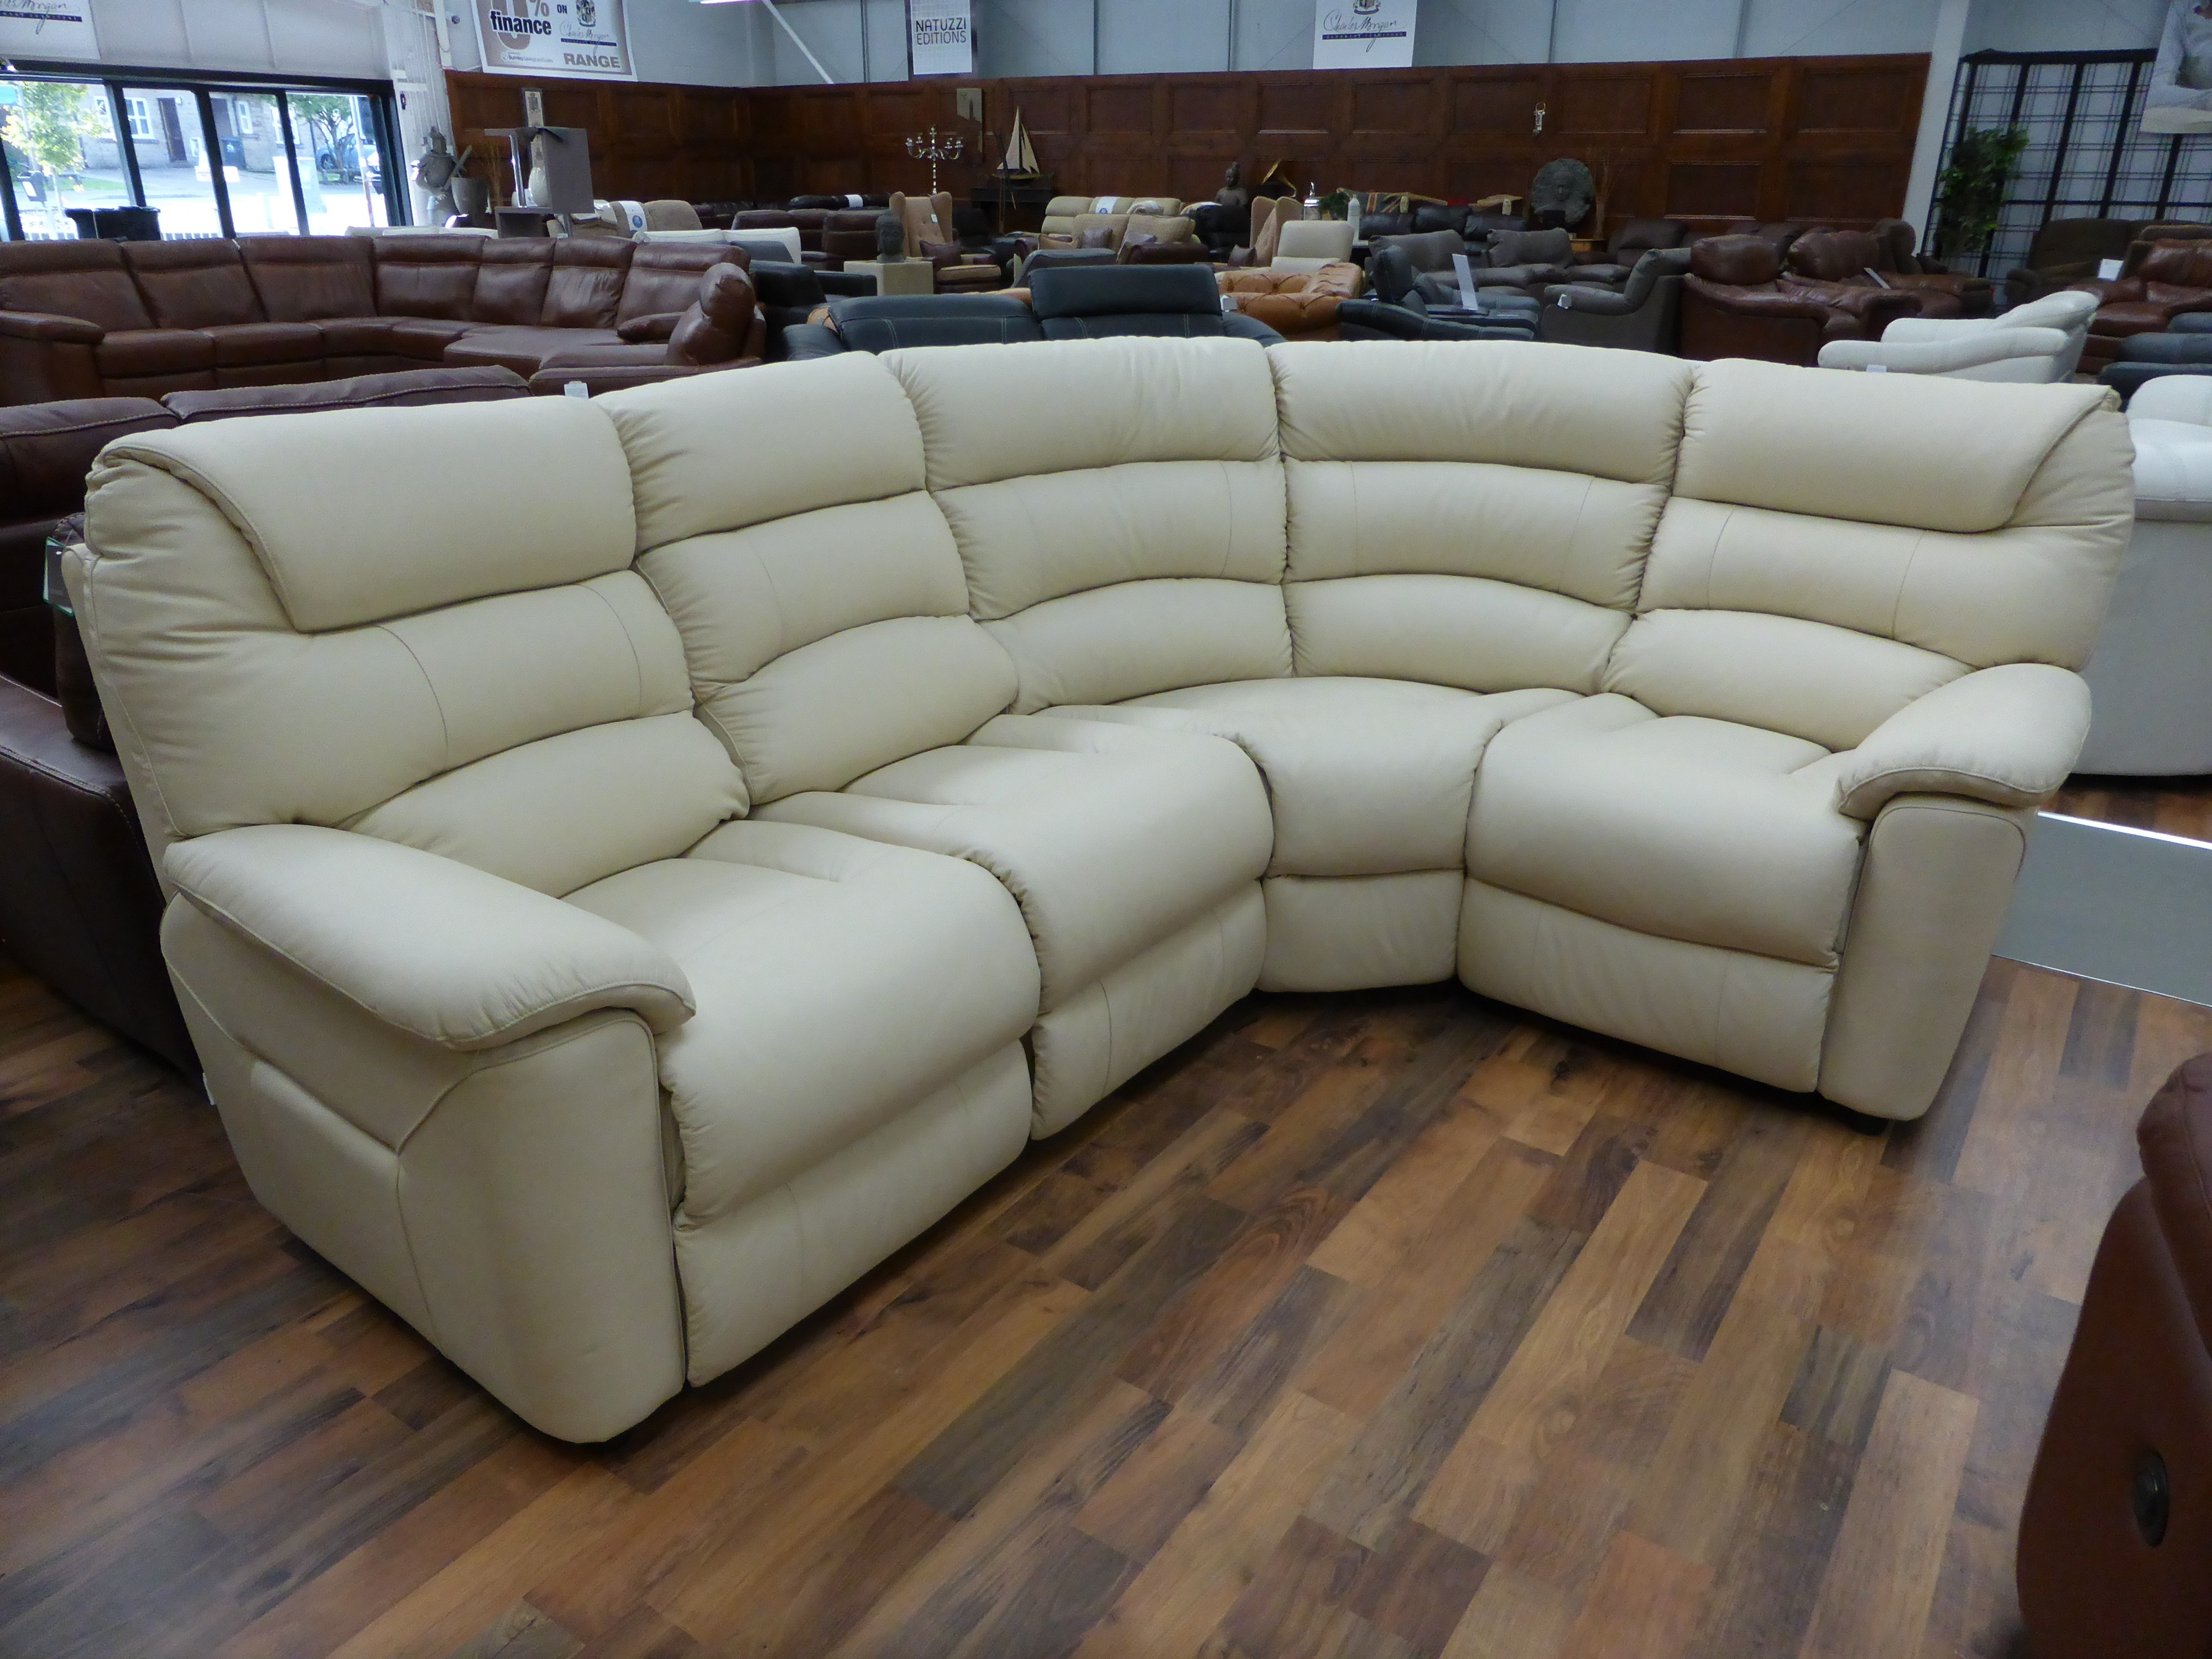 Furniture: Lazy Boy Sectional Couches | Lazy Boy Sofas | Lazy Boy with Sectional Sofas at Lazy Boy (Image 7 of 15)